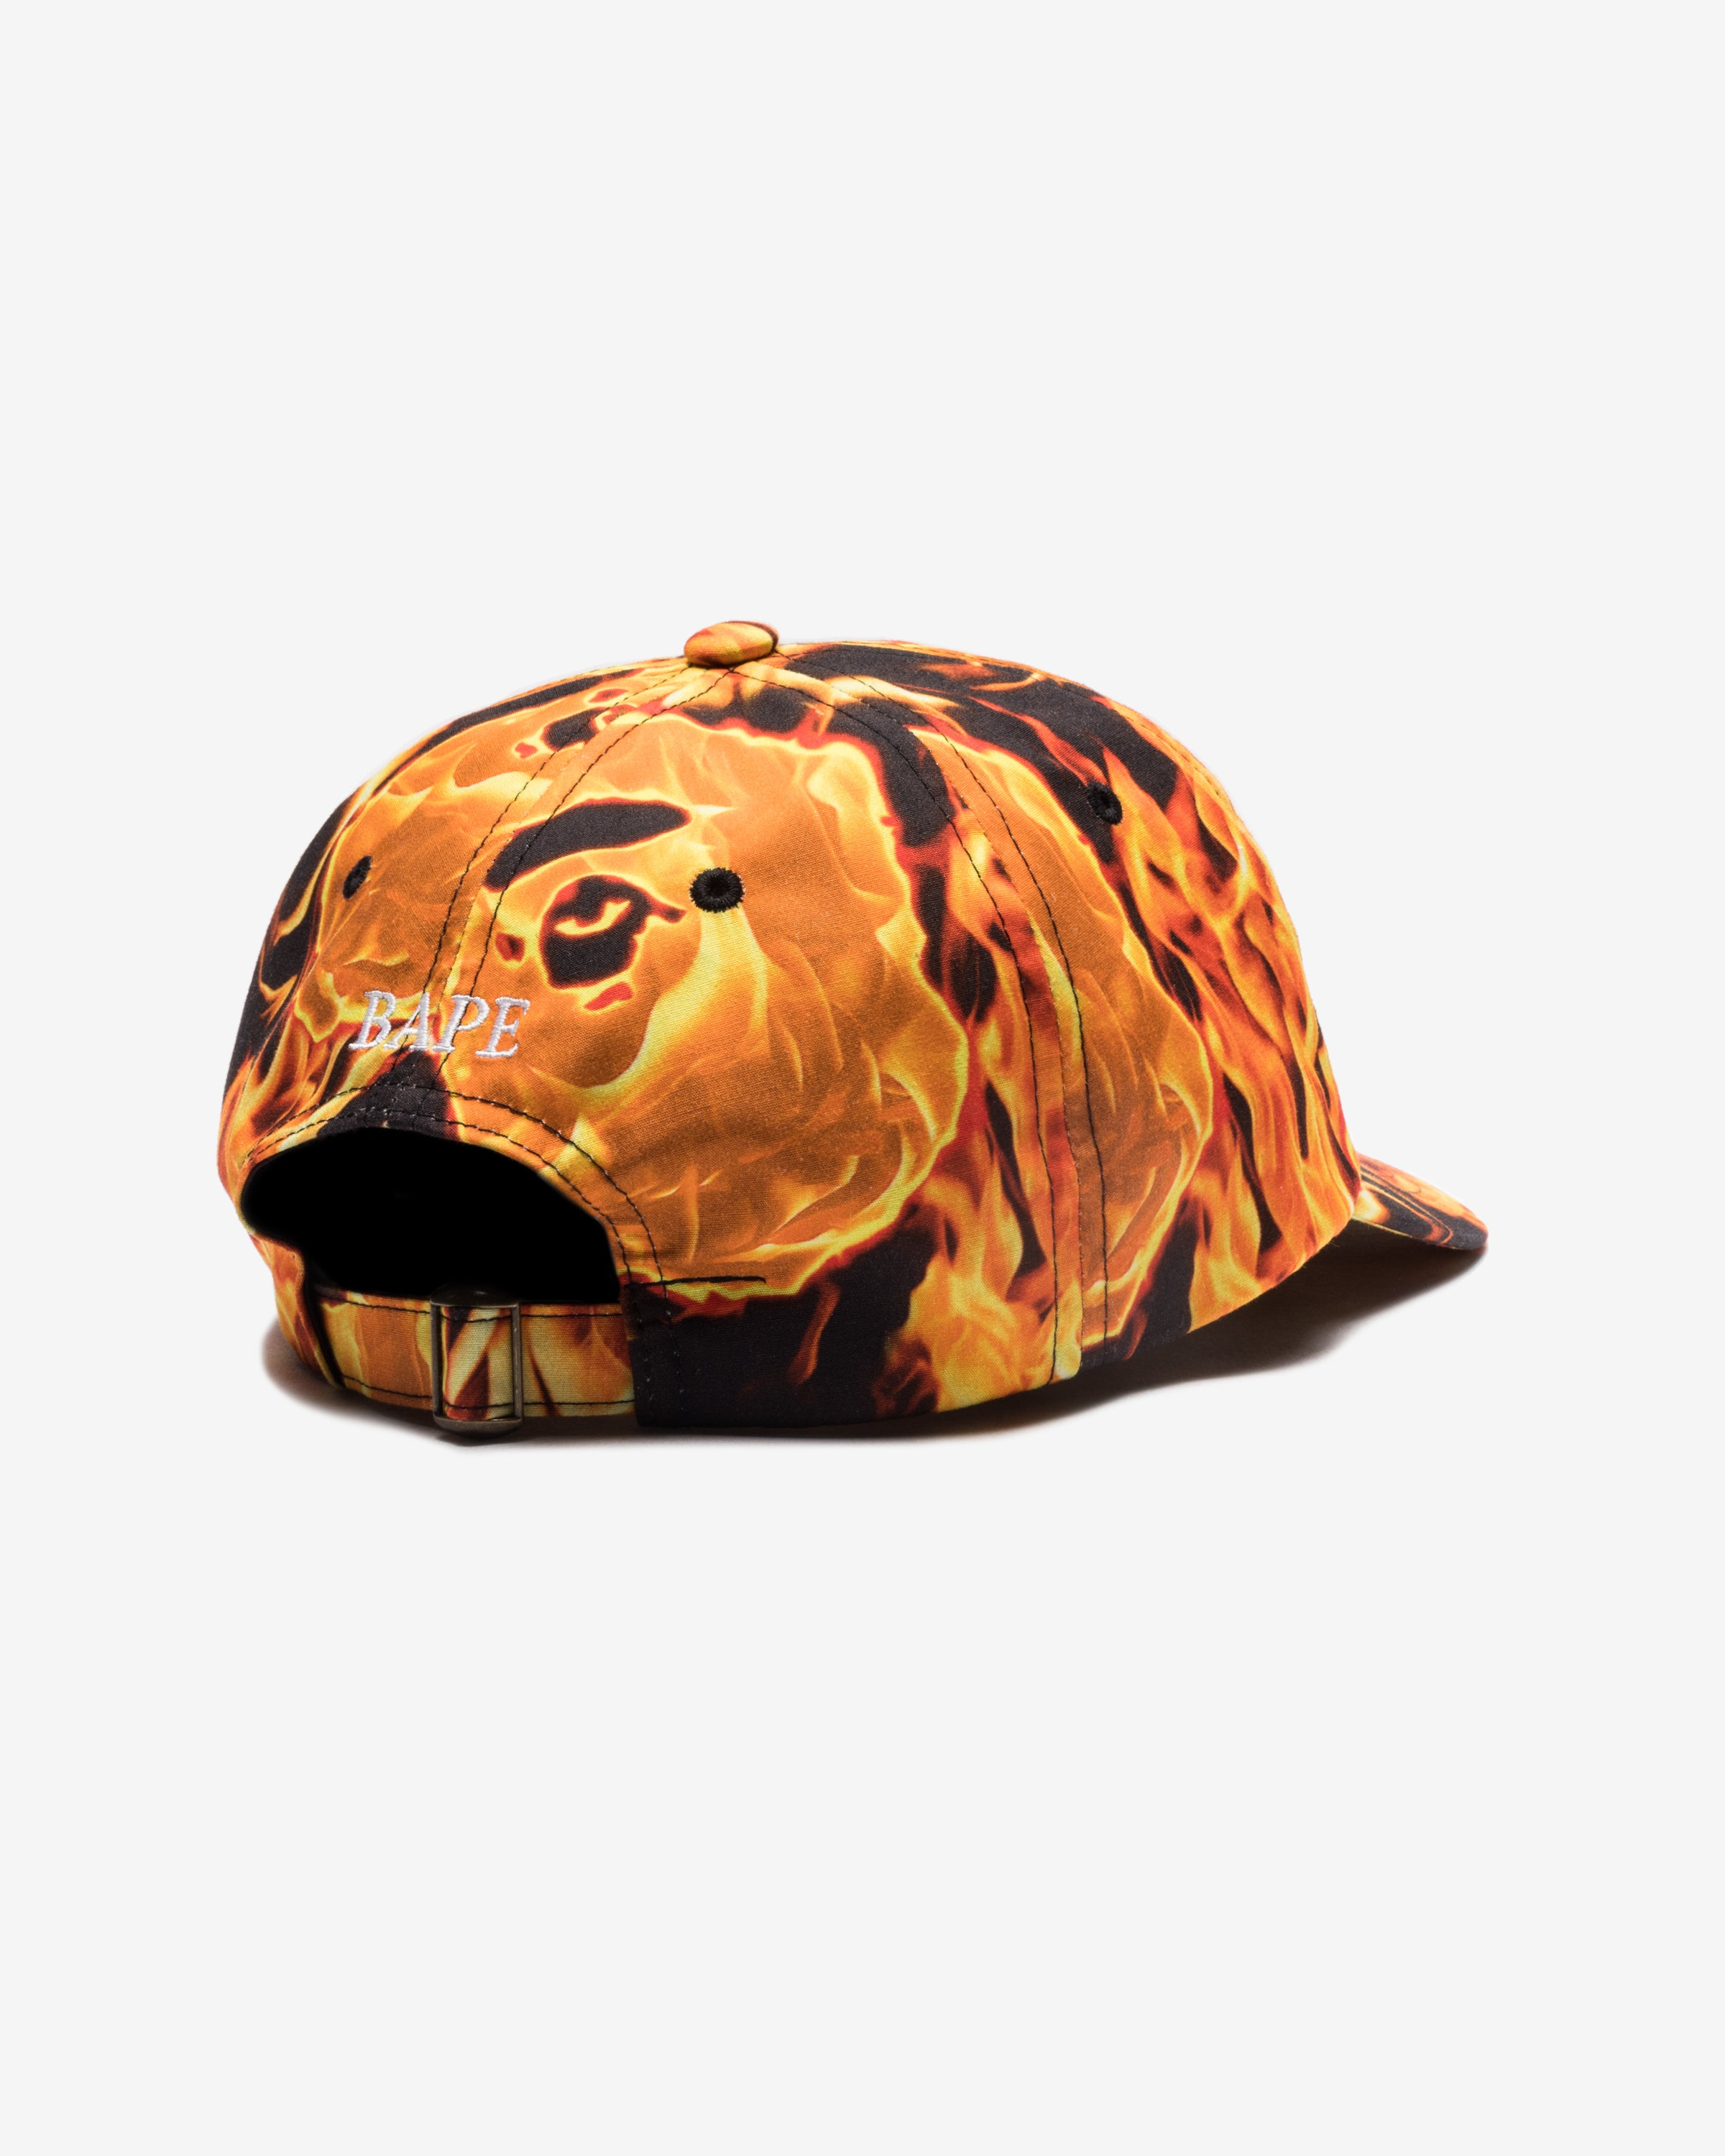 BAPE FLAME PANEL CAP - ORANGE